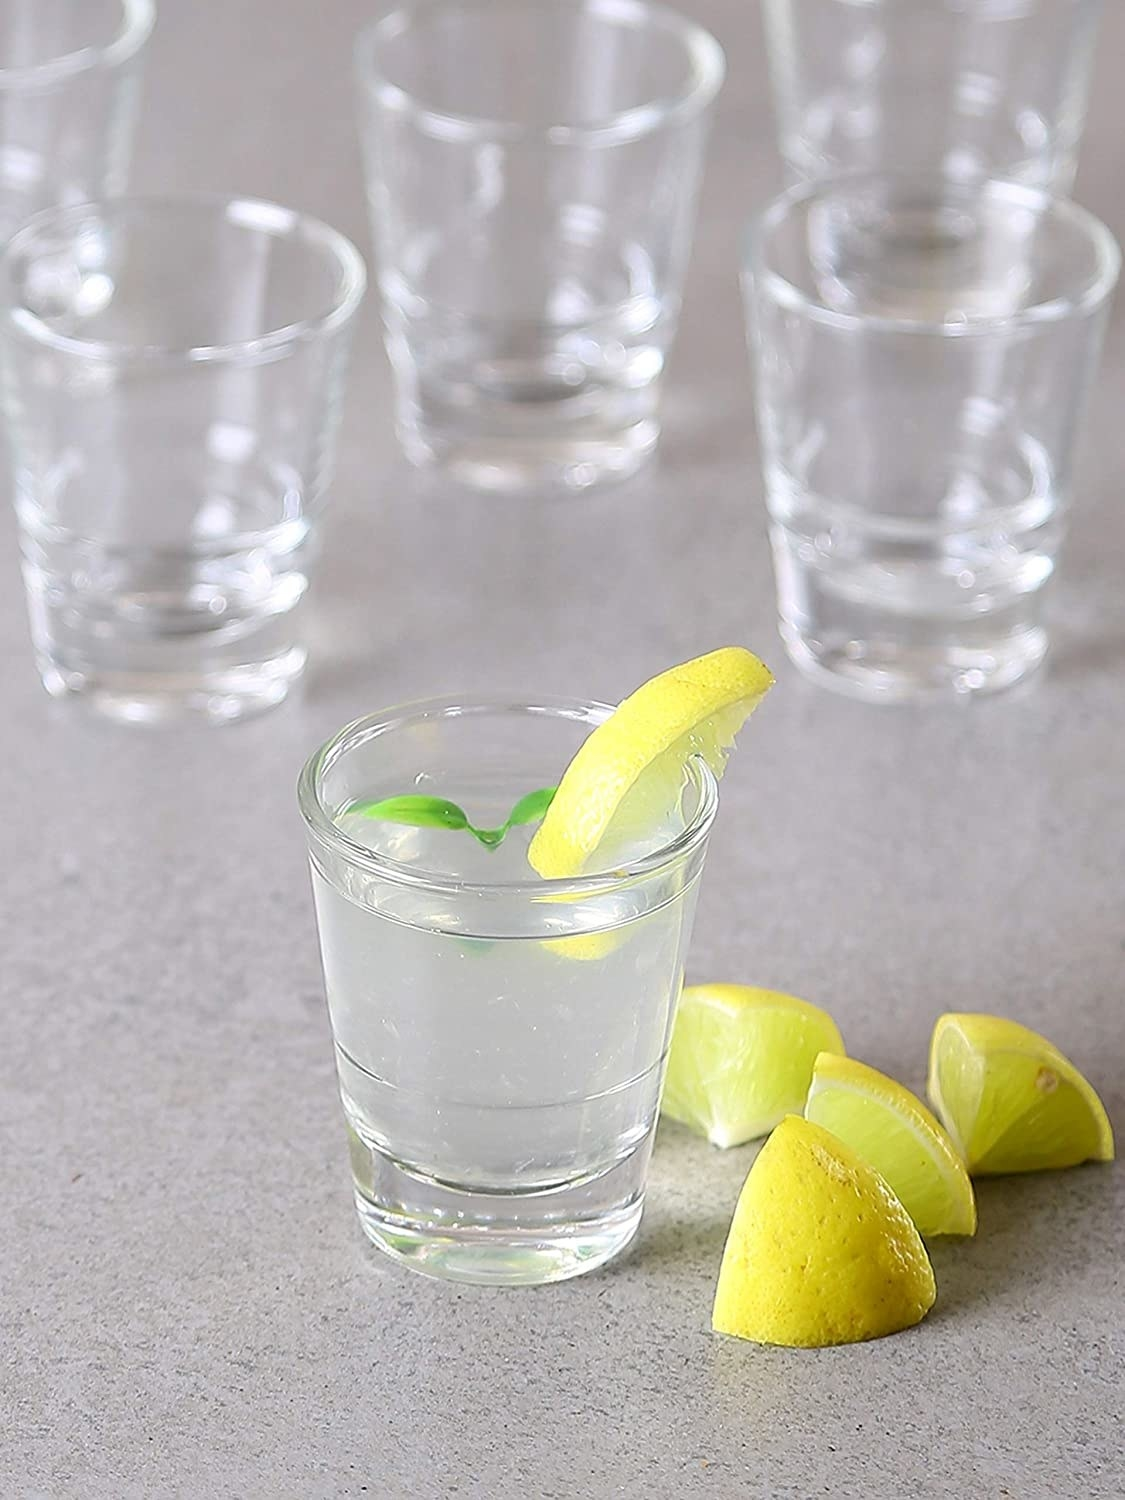 A shot glass with a drink and lemon in it.